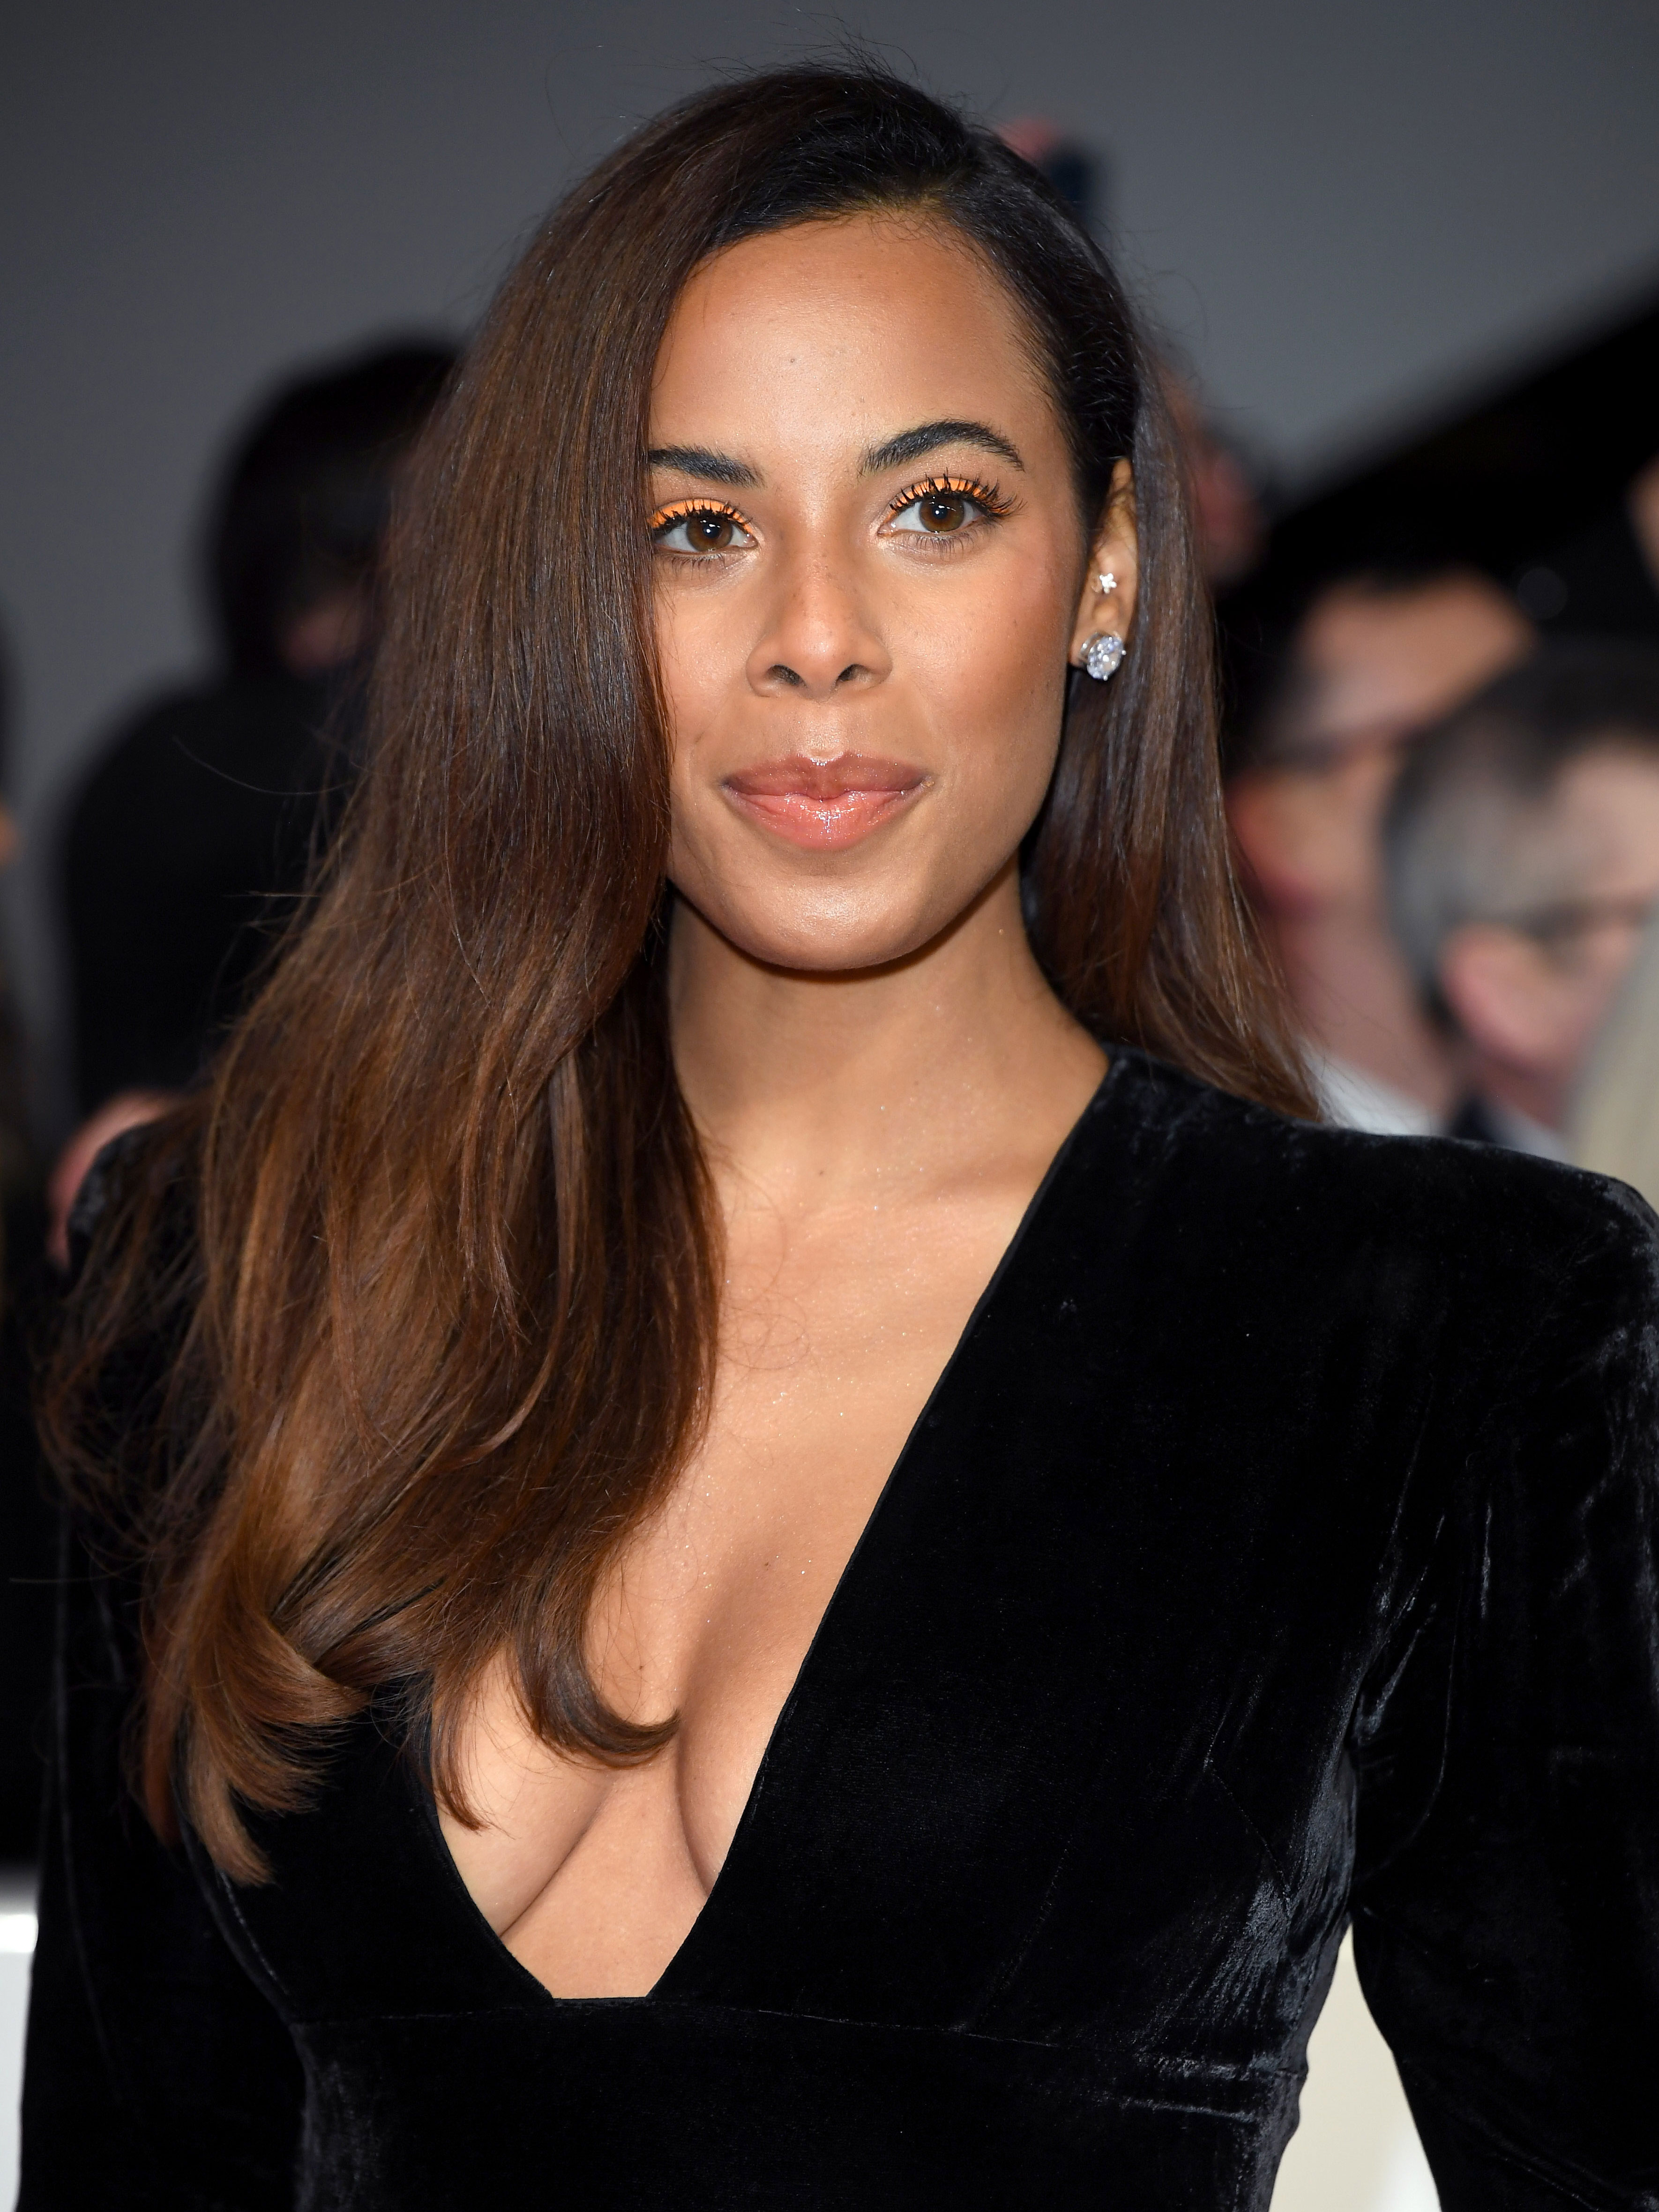 Rochelle Humes shares peek into life as a mum with pics of her daughters